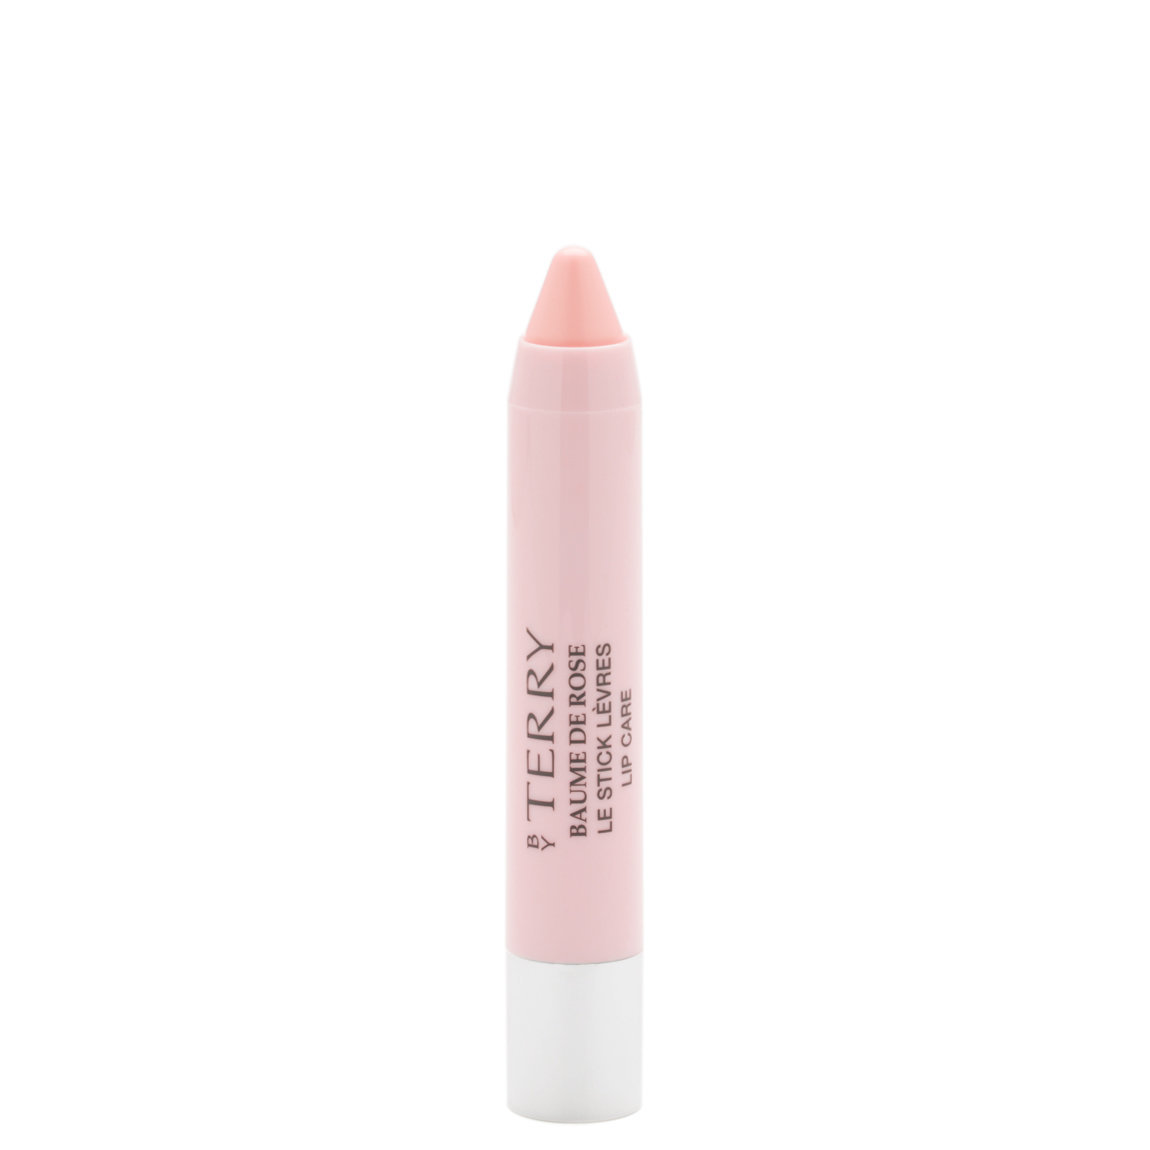 BY TERRY Baume de Rose Lip Care product smear.